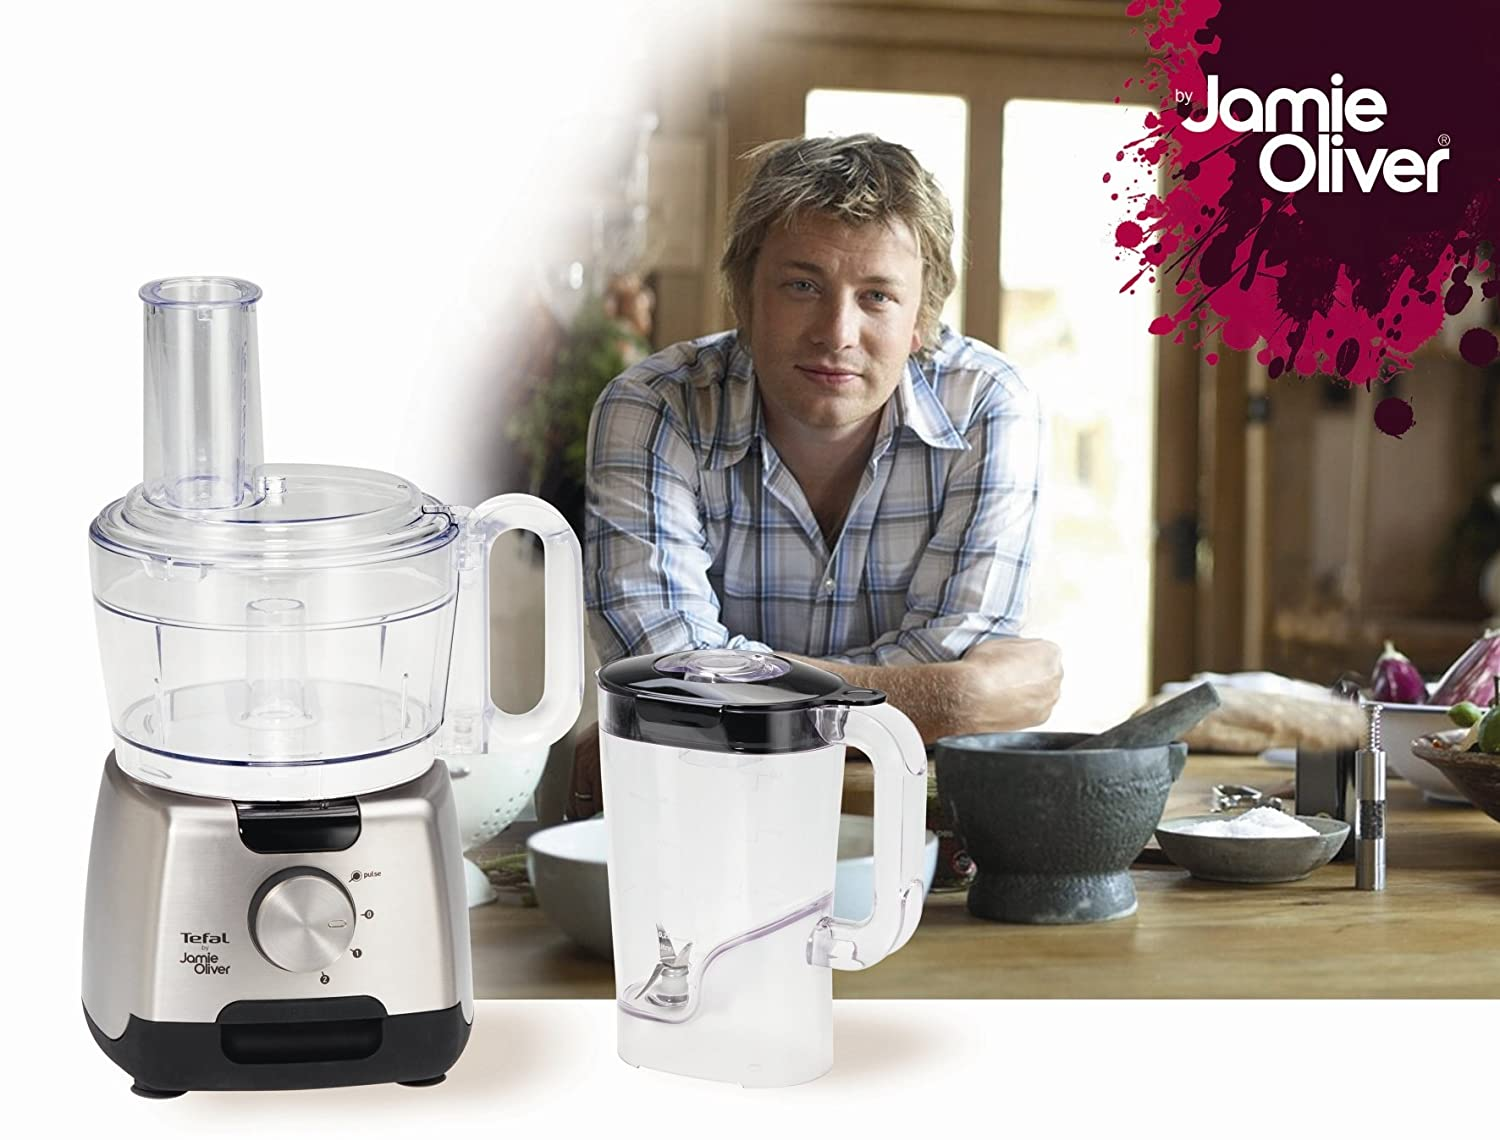 Amazon.de: Tefal DO250DA2 Kompakt-Küchenmaschine by Jamie Oliver